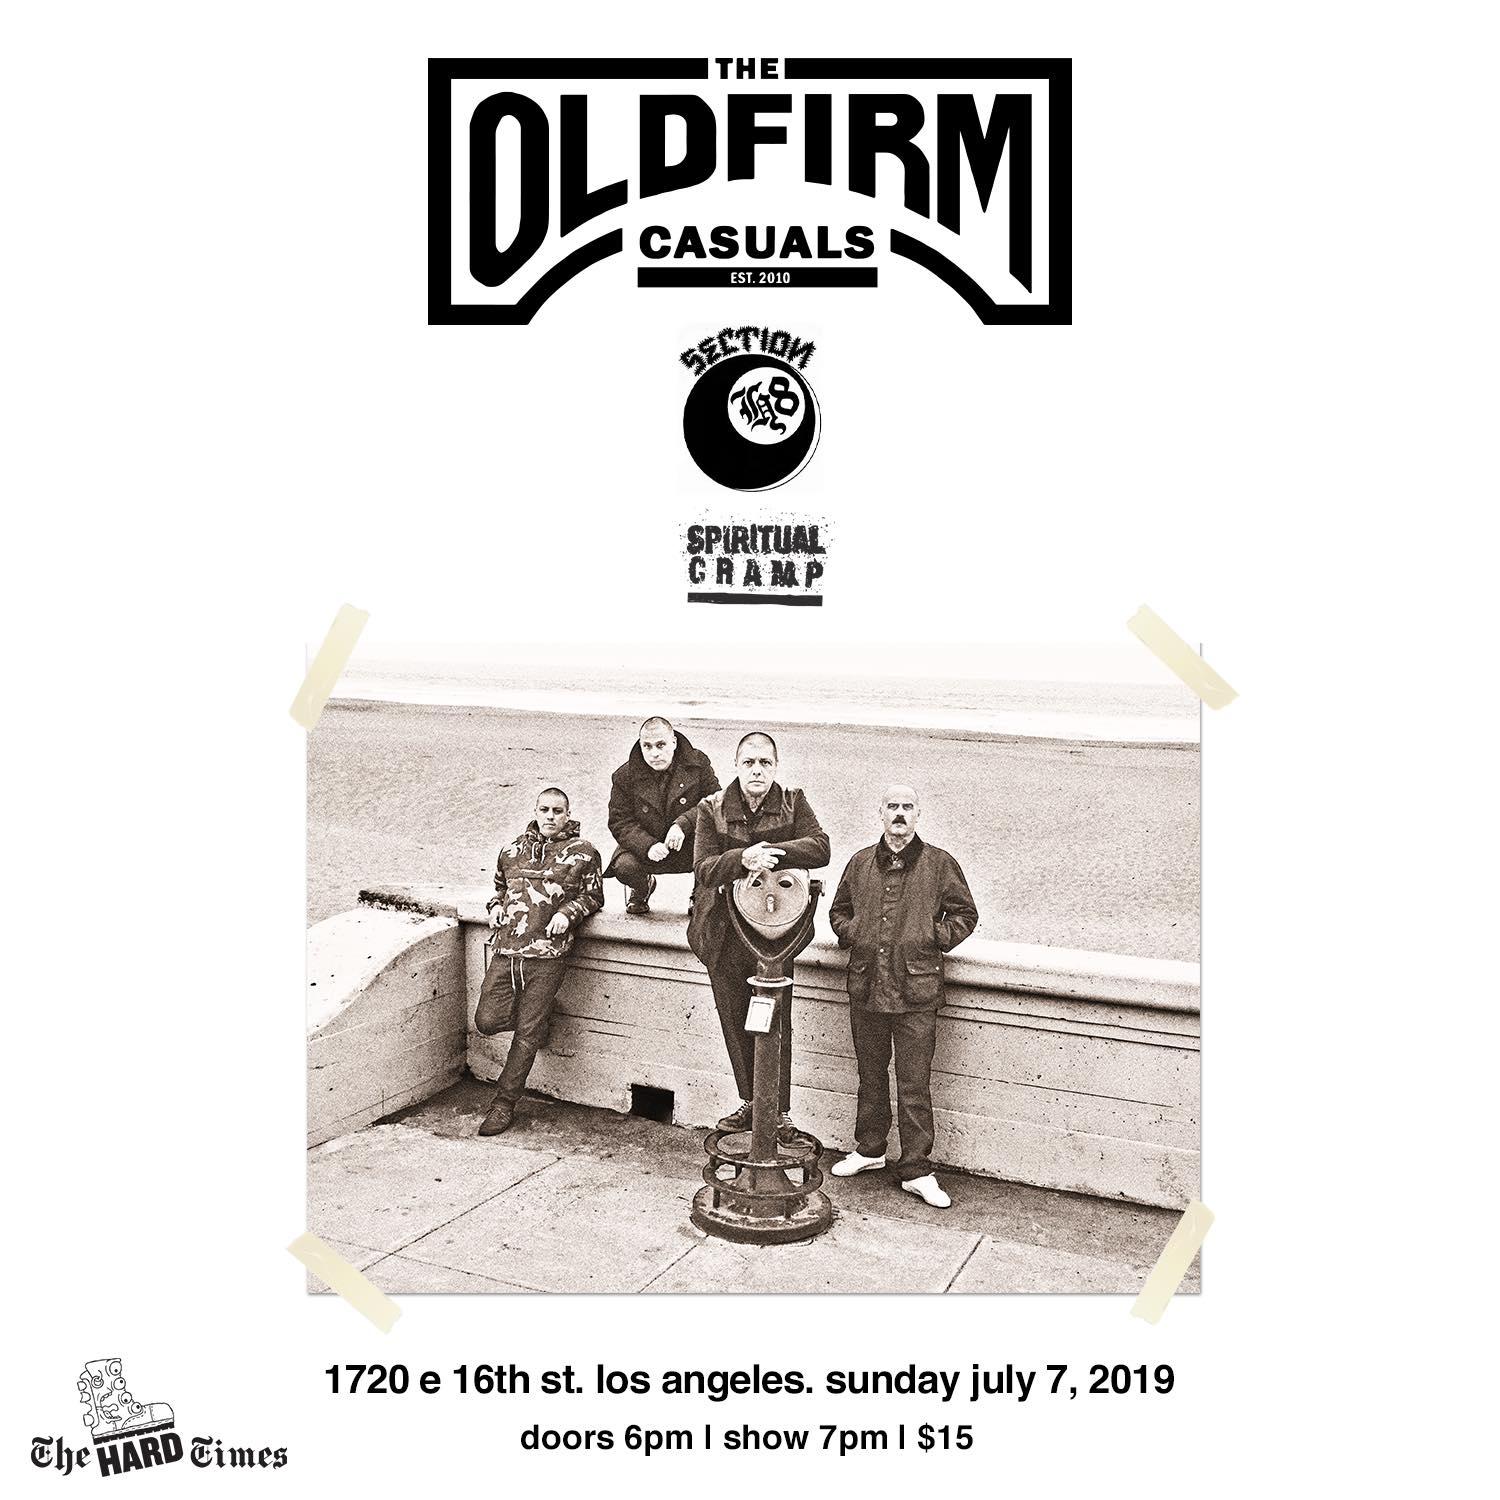 7.8.19 THE OLD FIRM CASUALS @ 1720 Los Angeles, CA